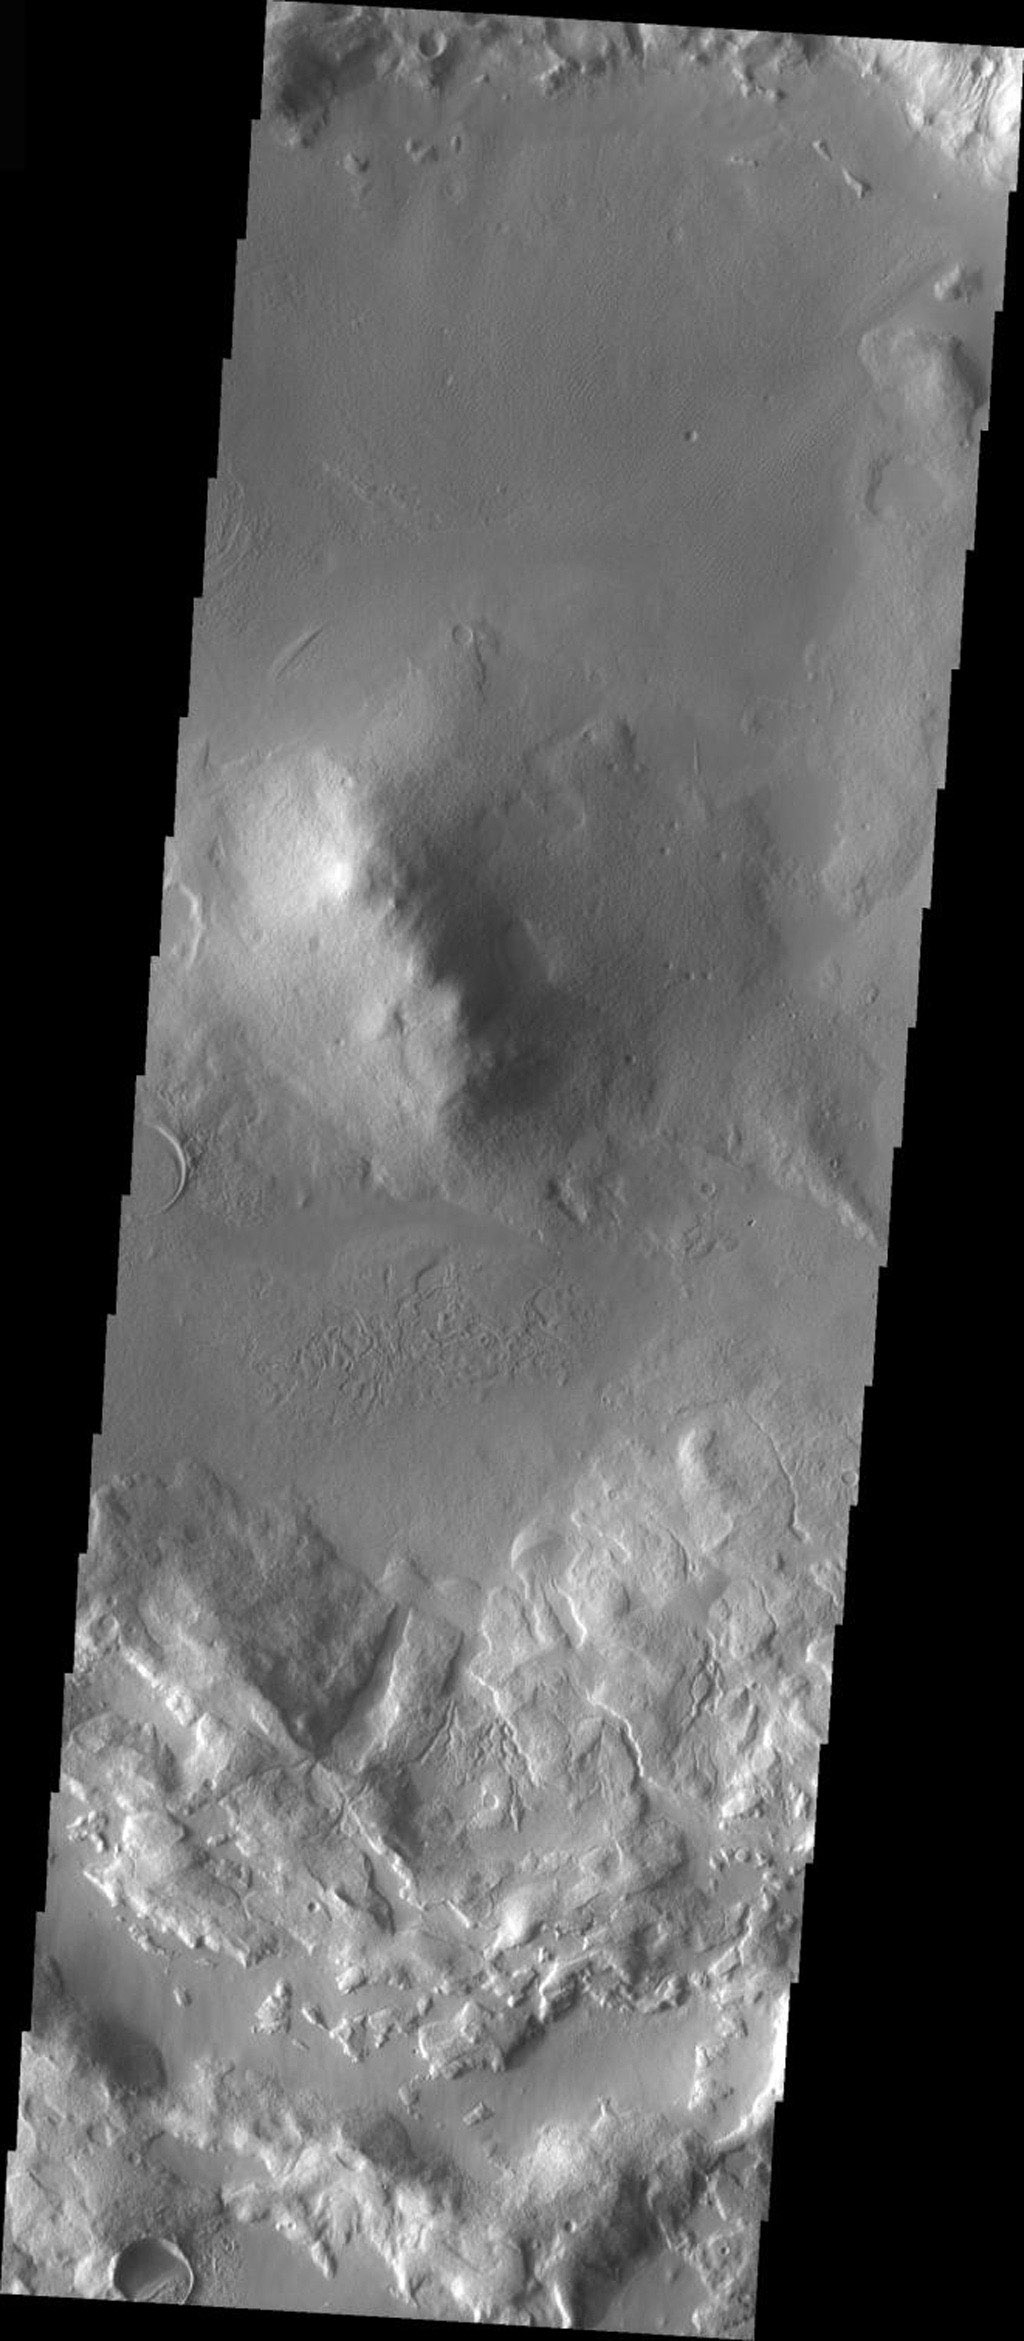 This image taken by NASA's Mars Odyssey shows Deuteronlius Mensae on Mars which contains a central peak in the middle of an older, flat-floored crater, infilled by sediment.